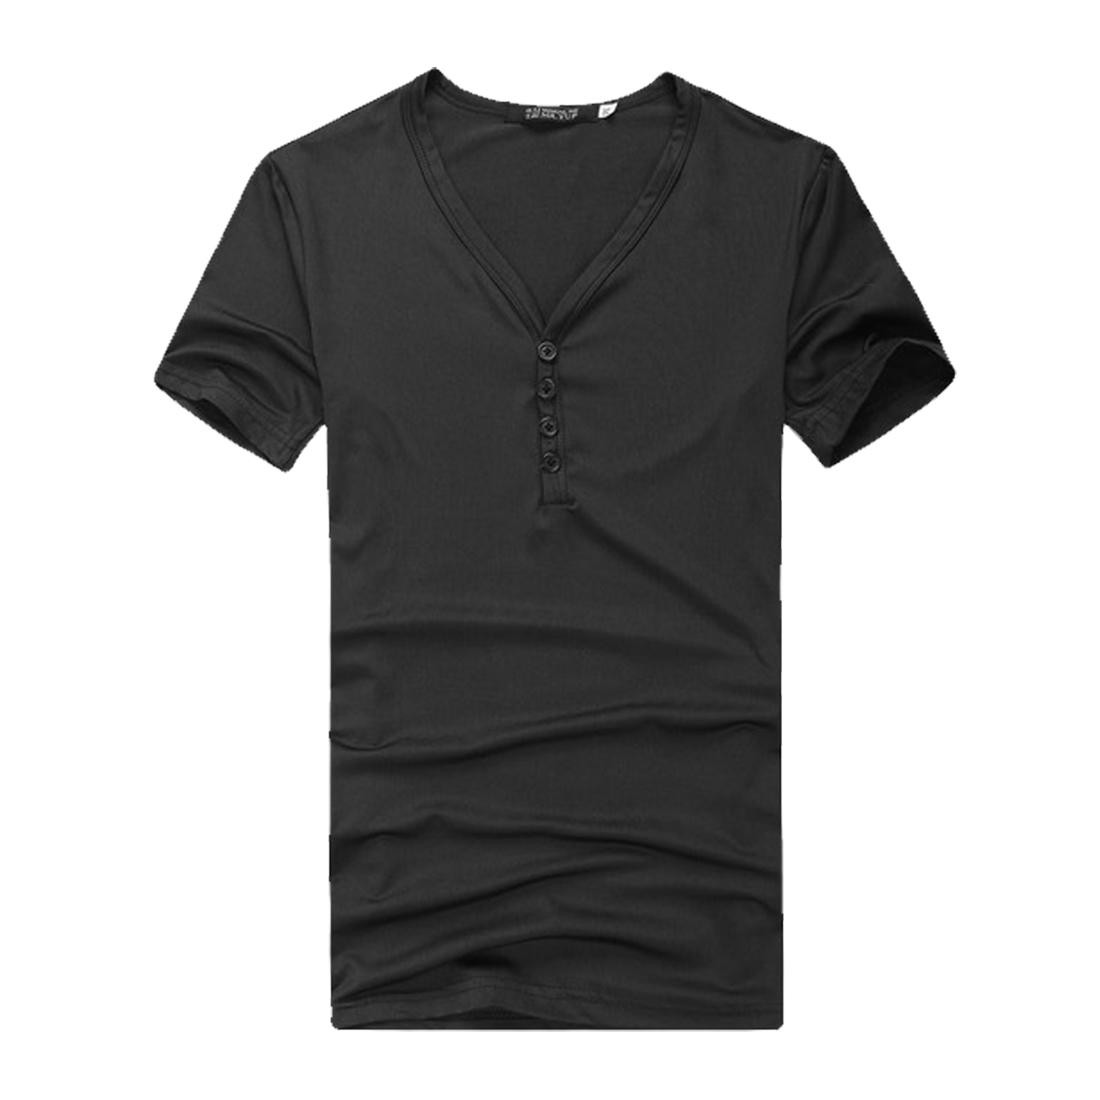 Men Black NEW V Neckline Buttons Decor Stretch Casual Top T-shirt L